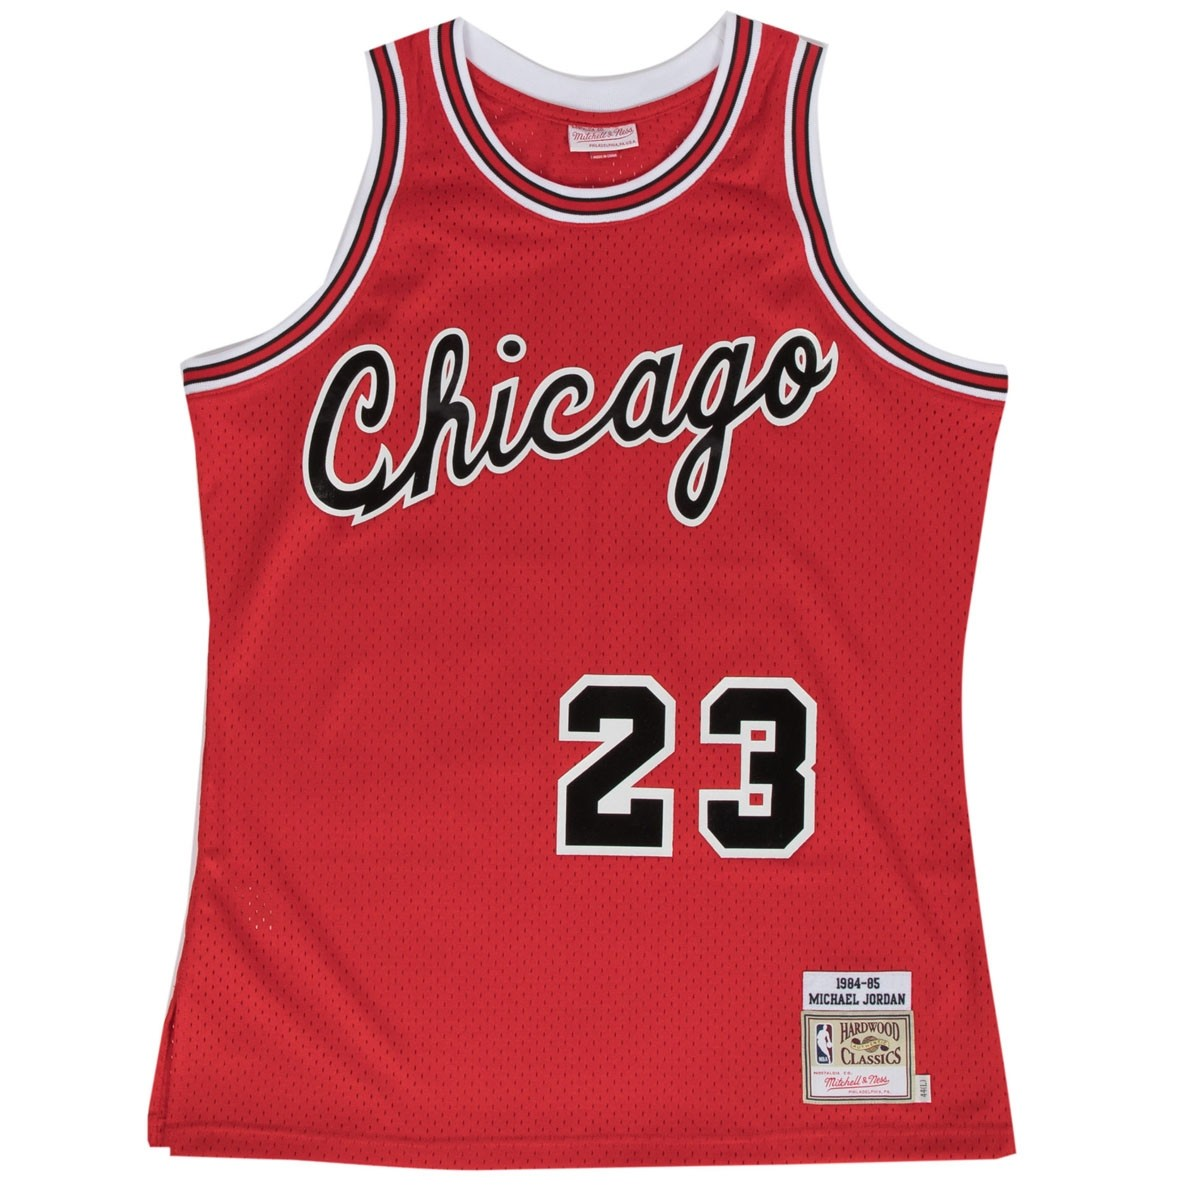 Mitchell & Ness Jordan Authentic Jersey 'Rookie 84-85'